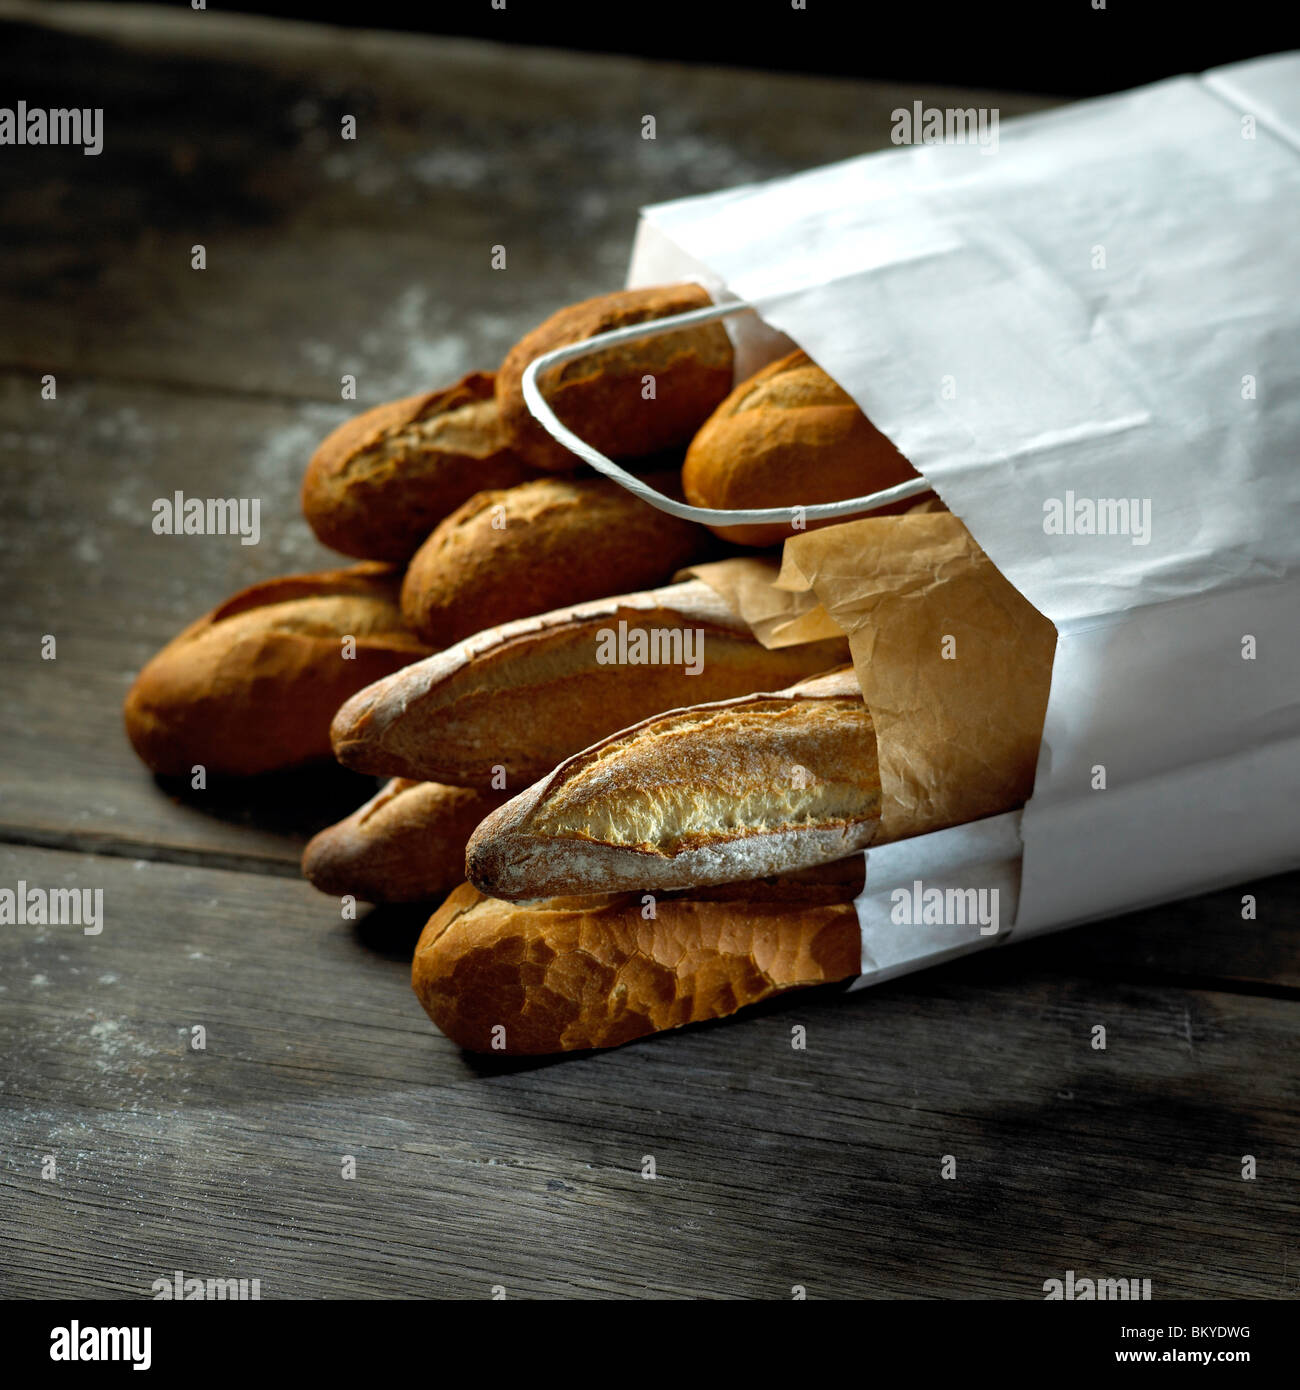 Bag of bread - Stock Image